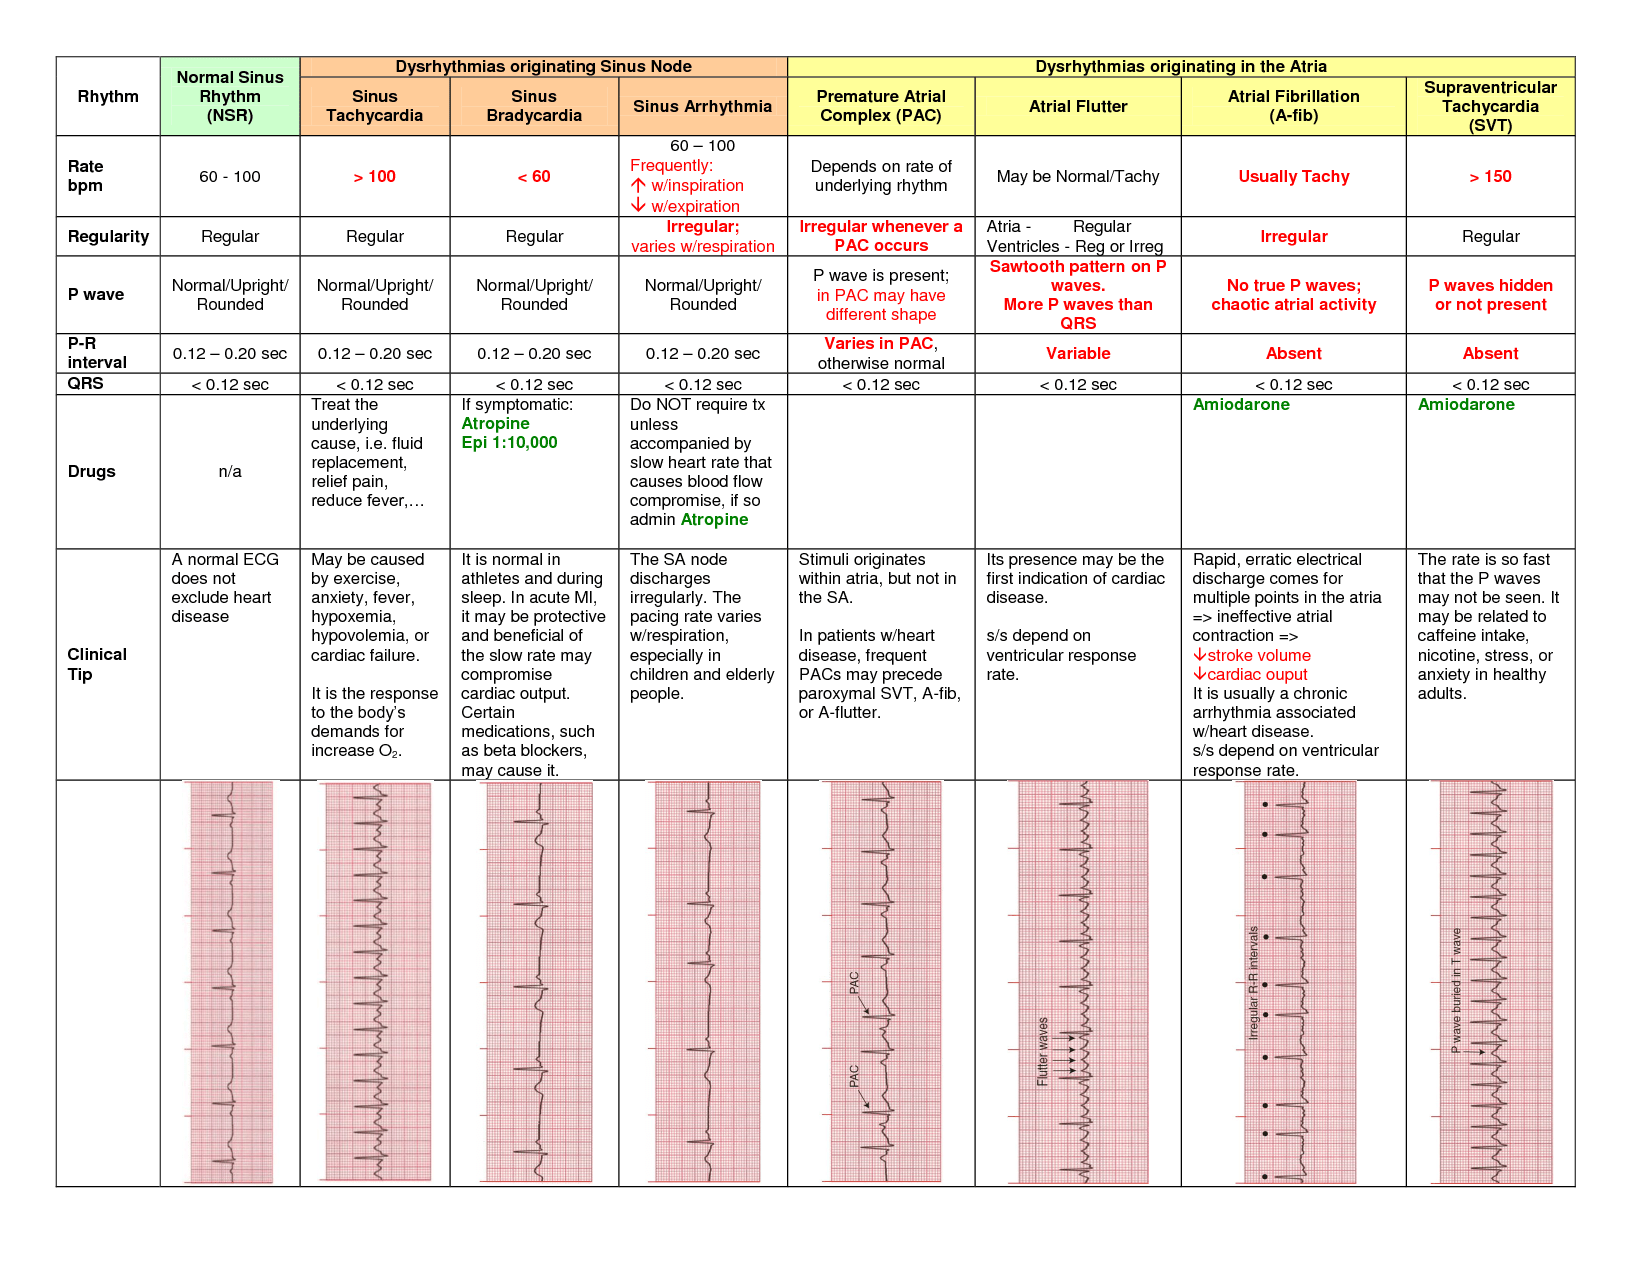 Dysrhythmias And Contraction Of The Heart On Meducation